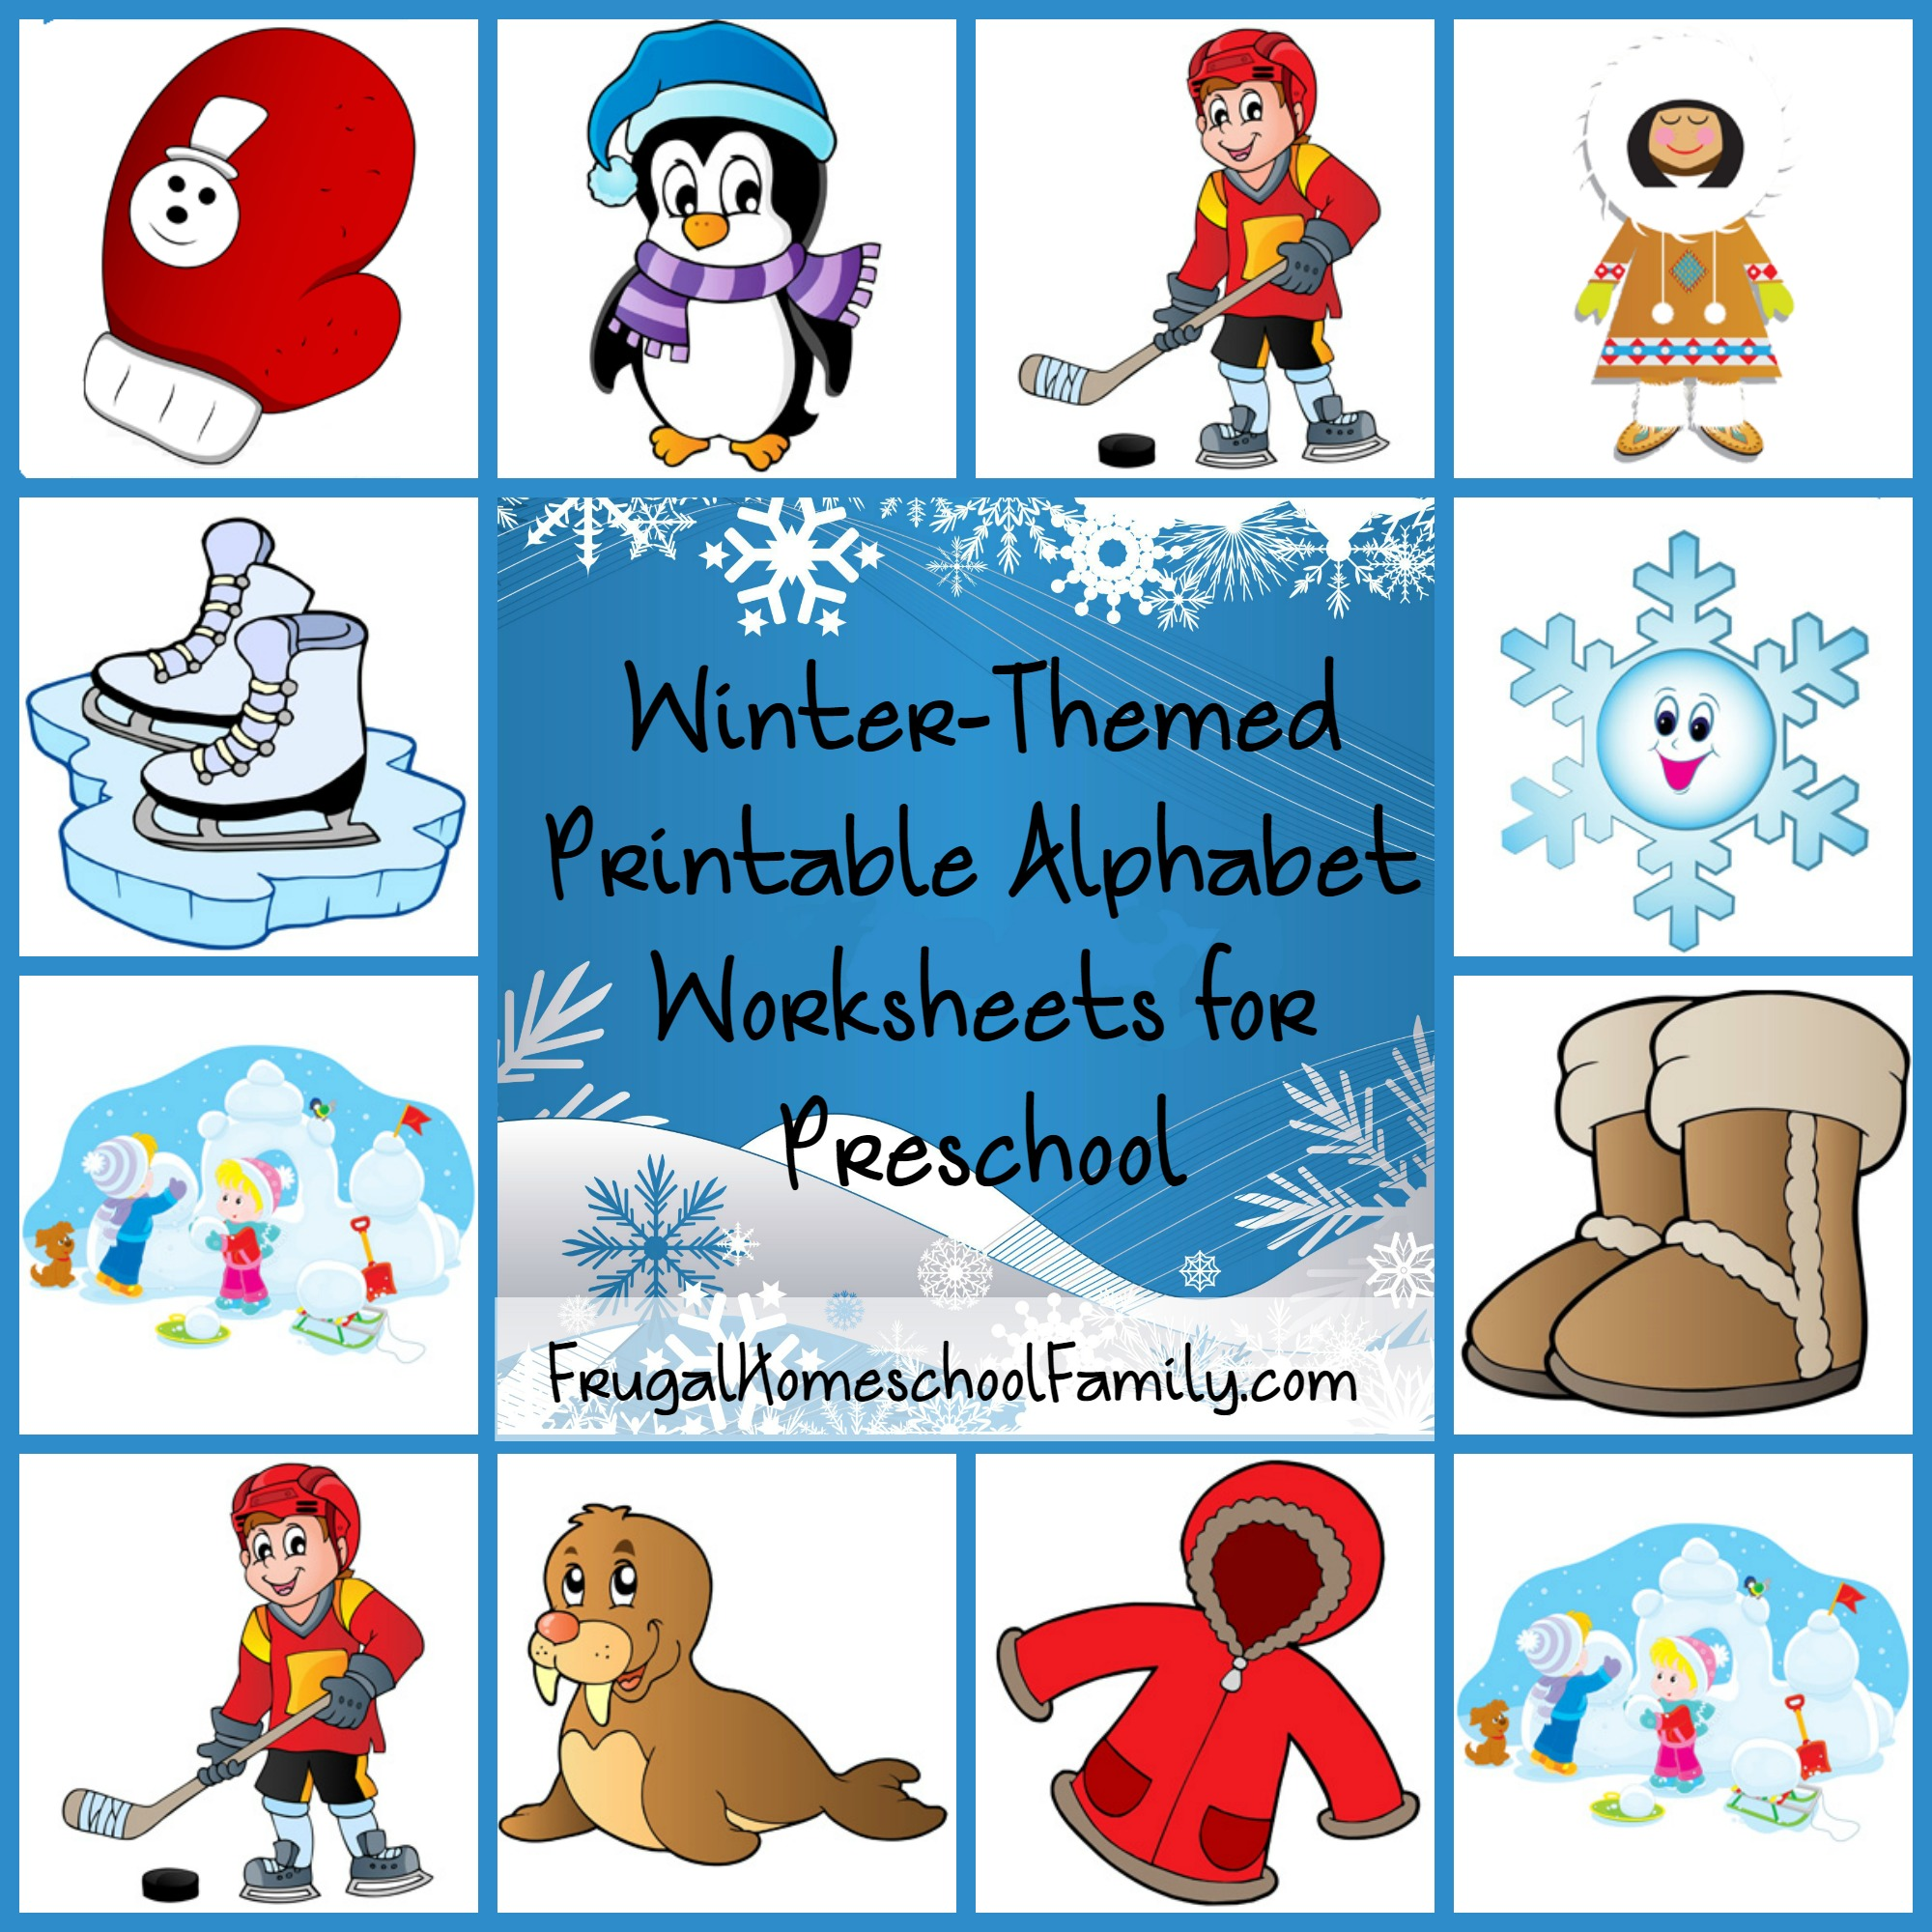 Free Winter-Themed Printable Alphabet Worksheets For